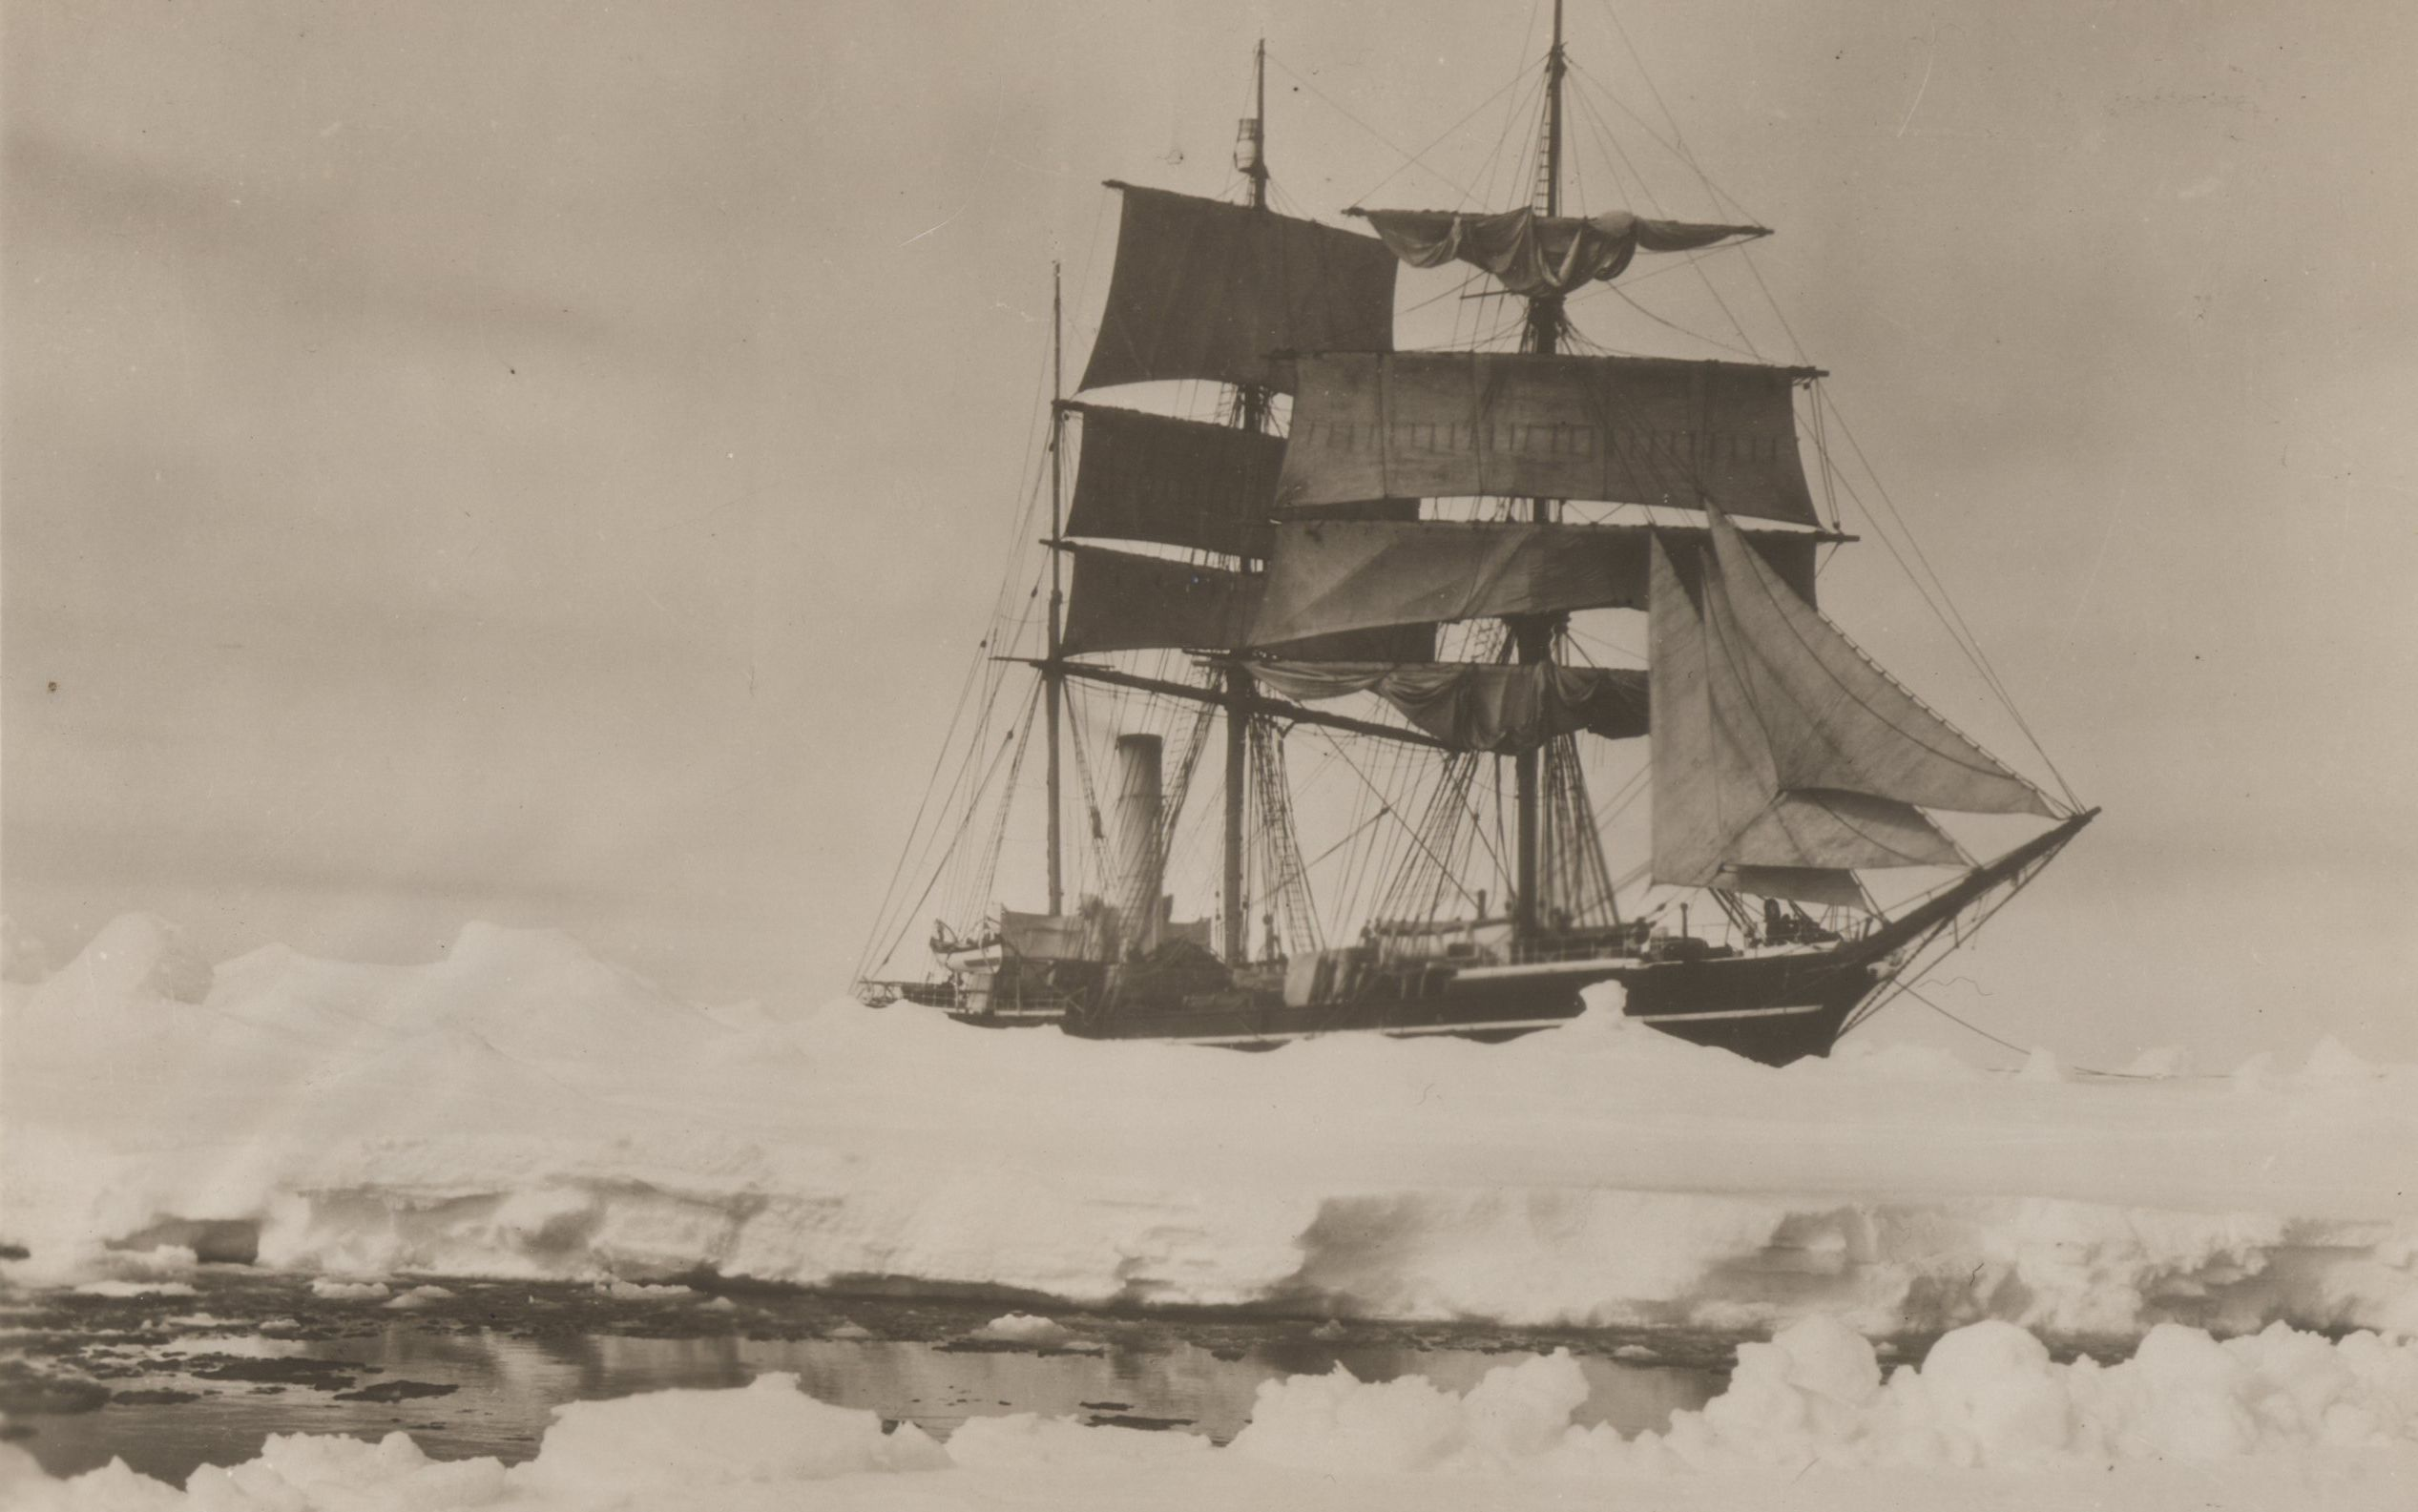 The Terra Nova, photographed in December 1910 by Herbert Ponting